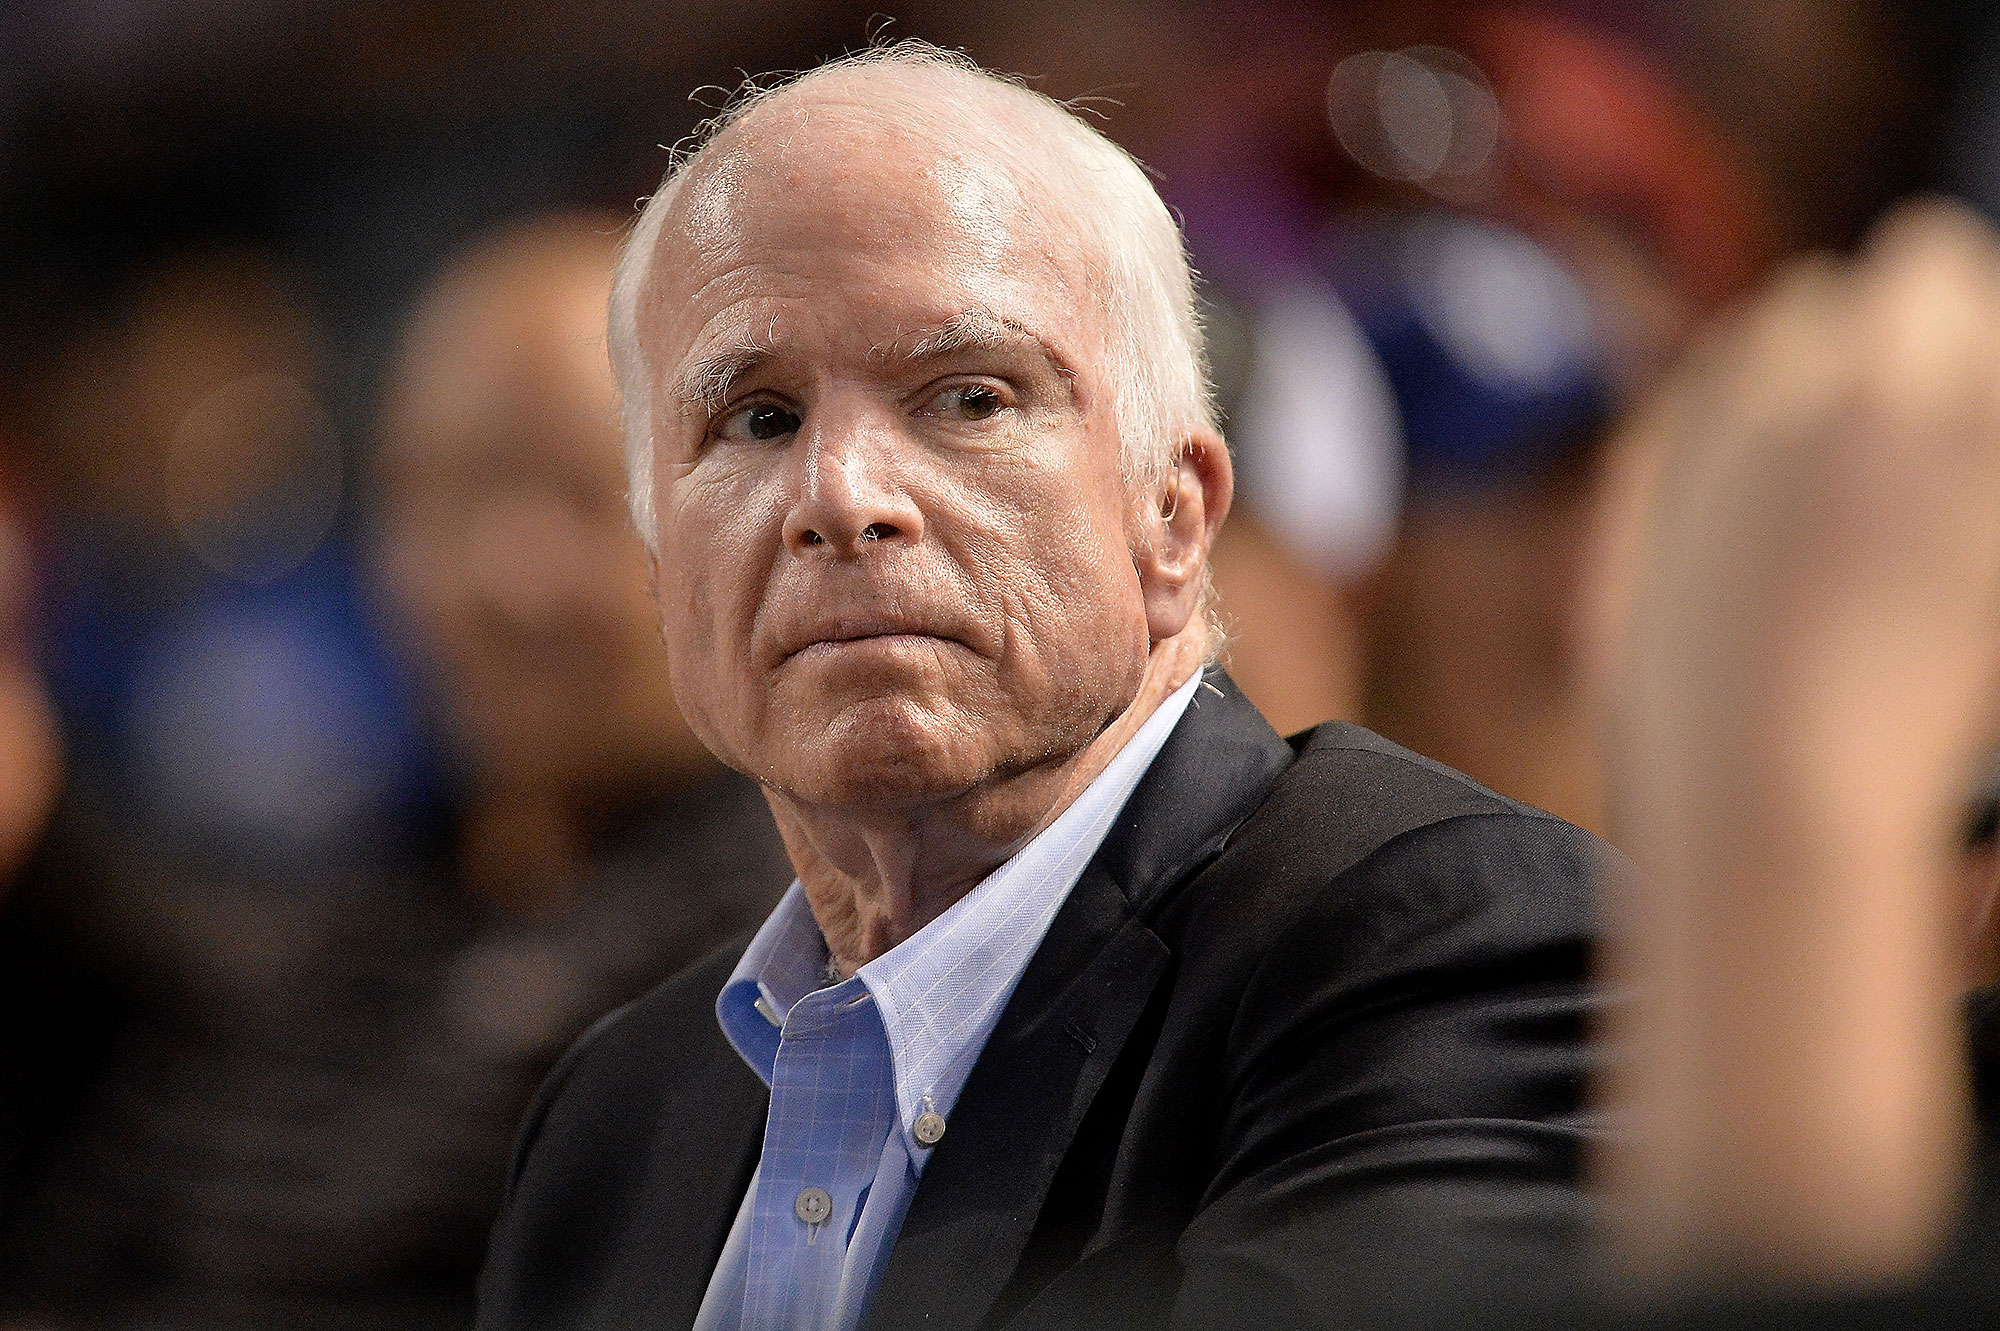 PHOENIX, AZ - AUGUST 10:  Senator John McCain (R-AZ) looks on while attending the MLB game between the Los Angeles Dodgers and Arizona Diamondbacks at Chase Field on August 10, 2017 in Phoenix, Arizona.  (Photo by Jennifer Stewart/Getty Images)